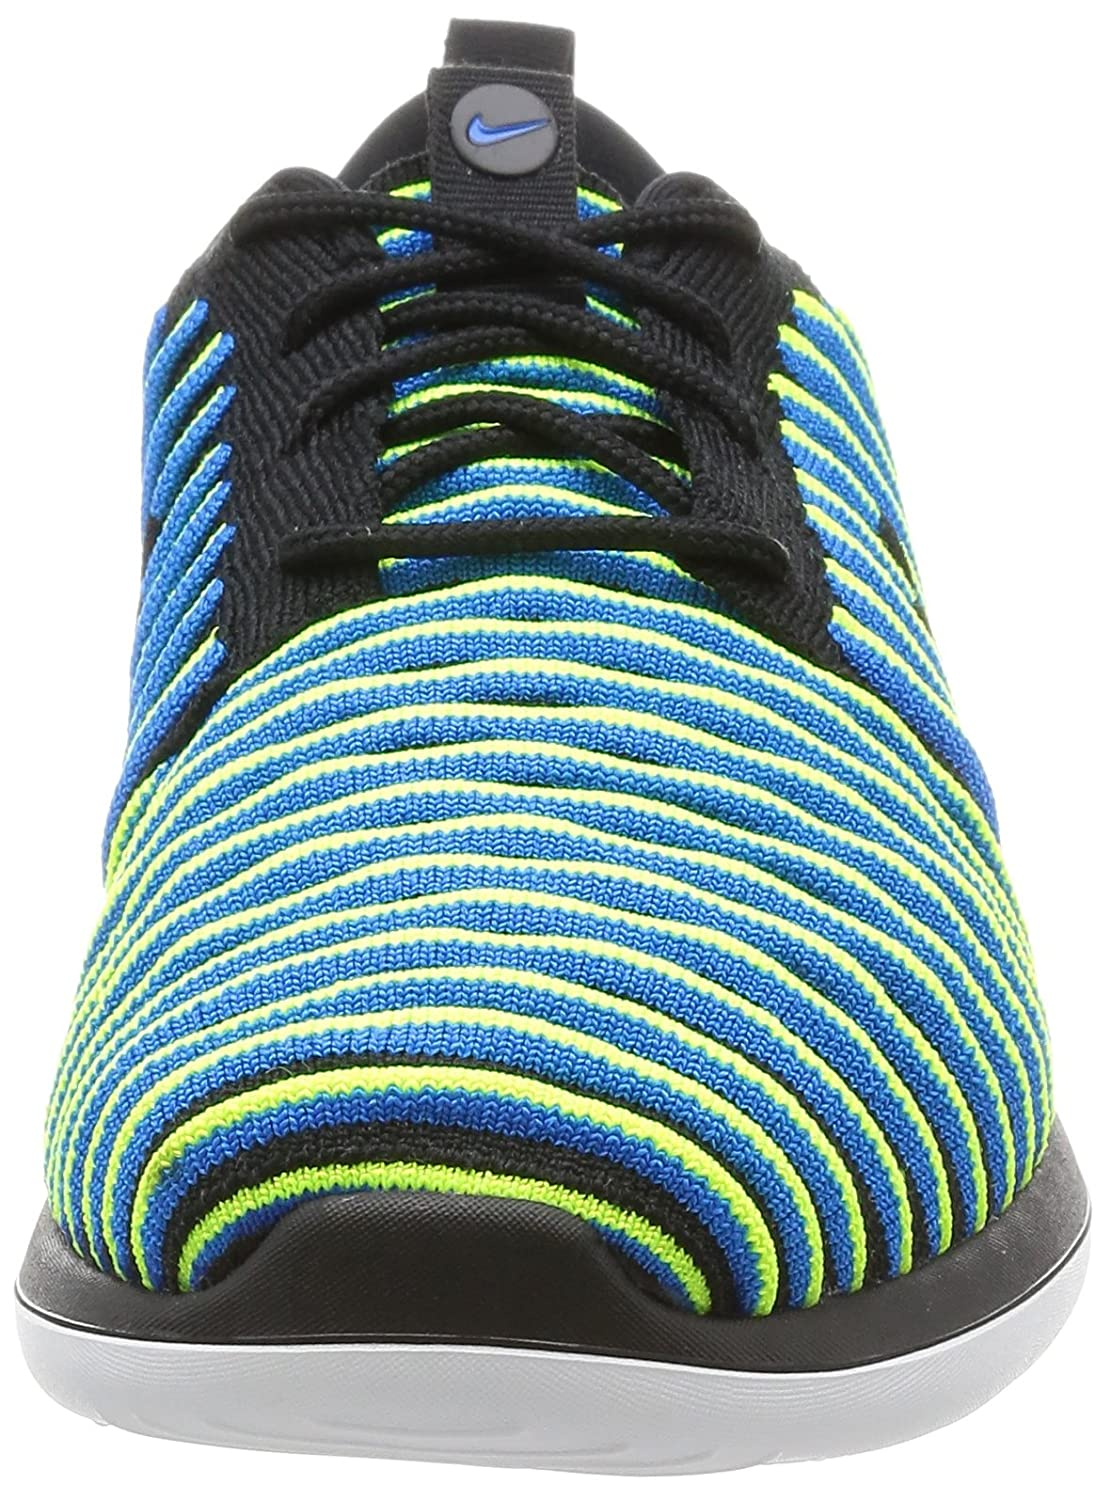 2dc9914d5006 Nike Roshe Two Flyknit Women s Trail Running Sneakers  Amazon.co.uk  Shoes    Bags